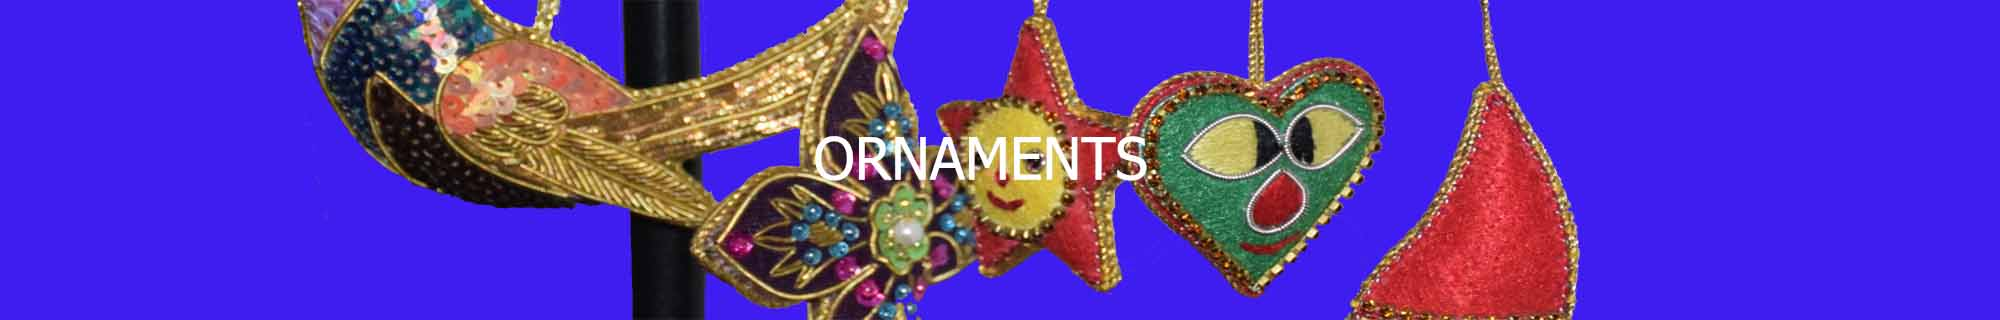 Ornaments & Hangings